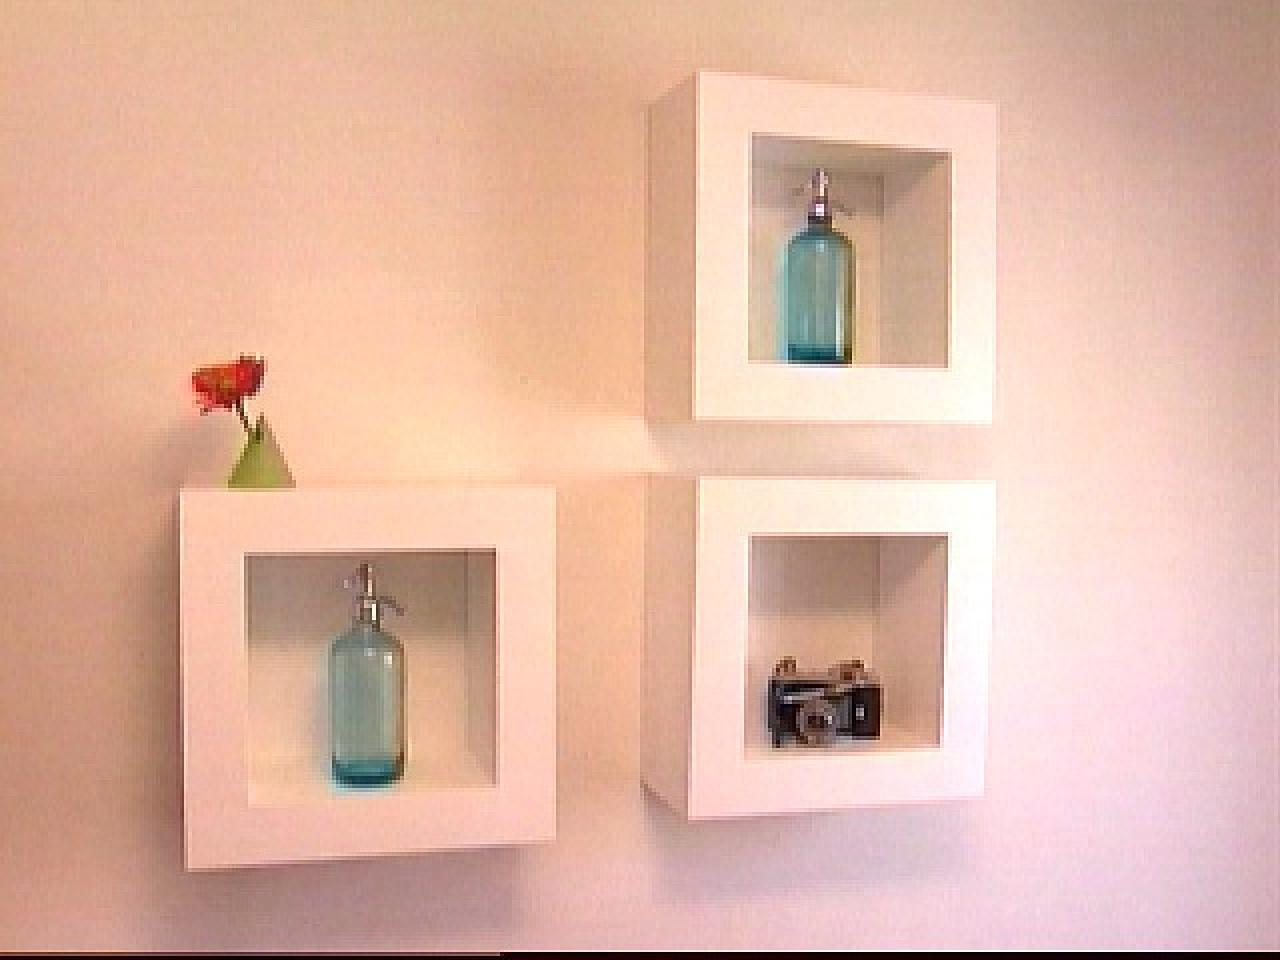 floating shelves and cubes box ideas cubeshelves white shelf with towel bar under bracket tier suspended vanity glass wall for electronics target bathroom ladder shelving